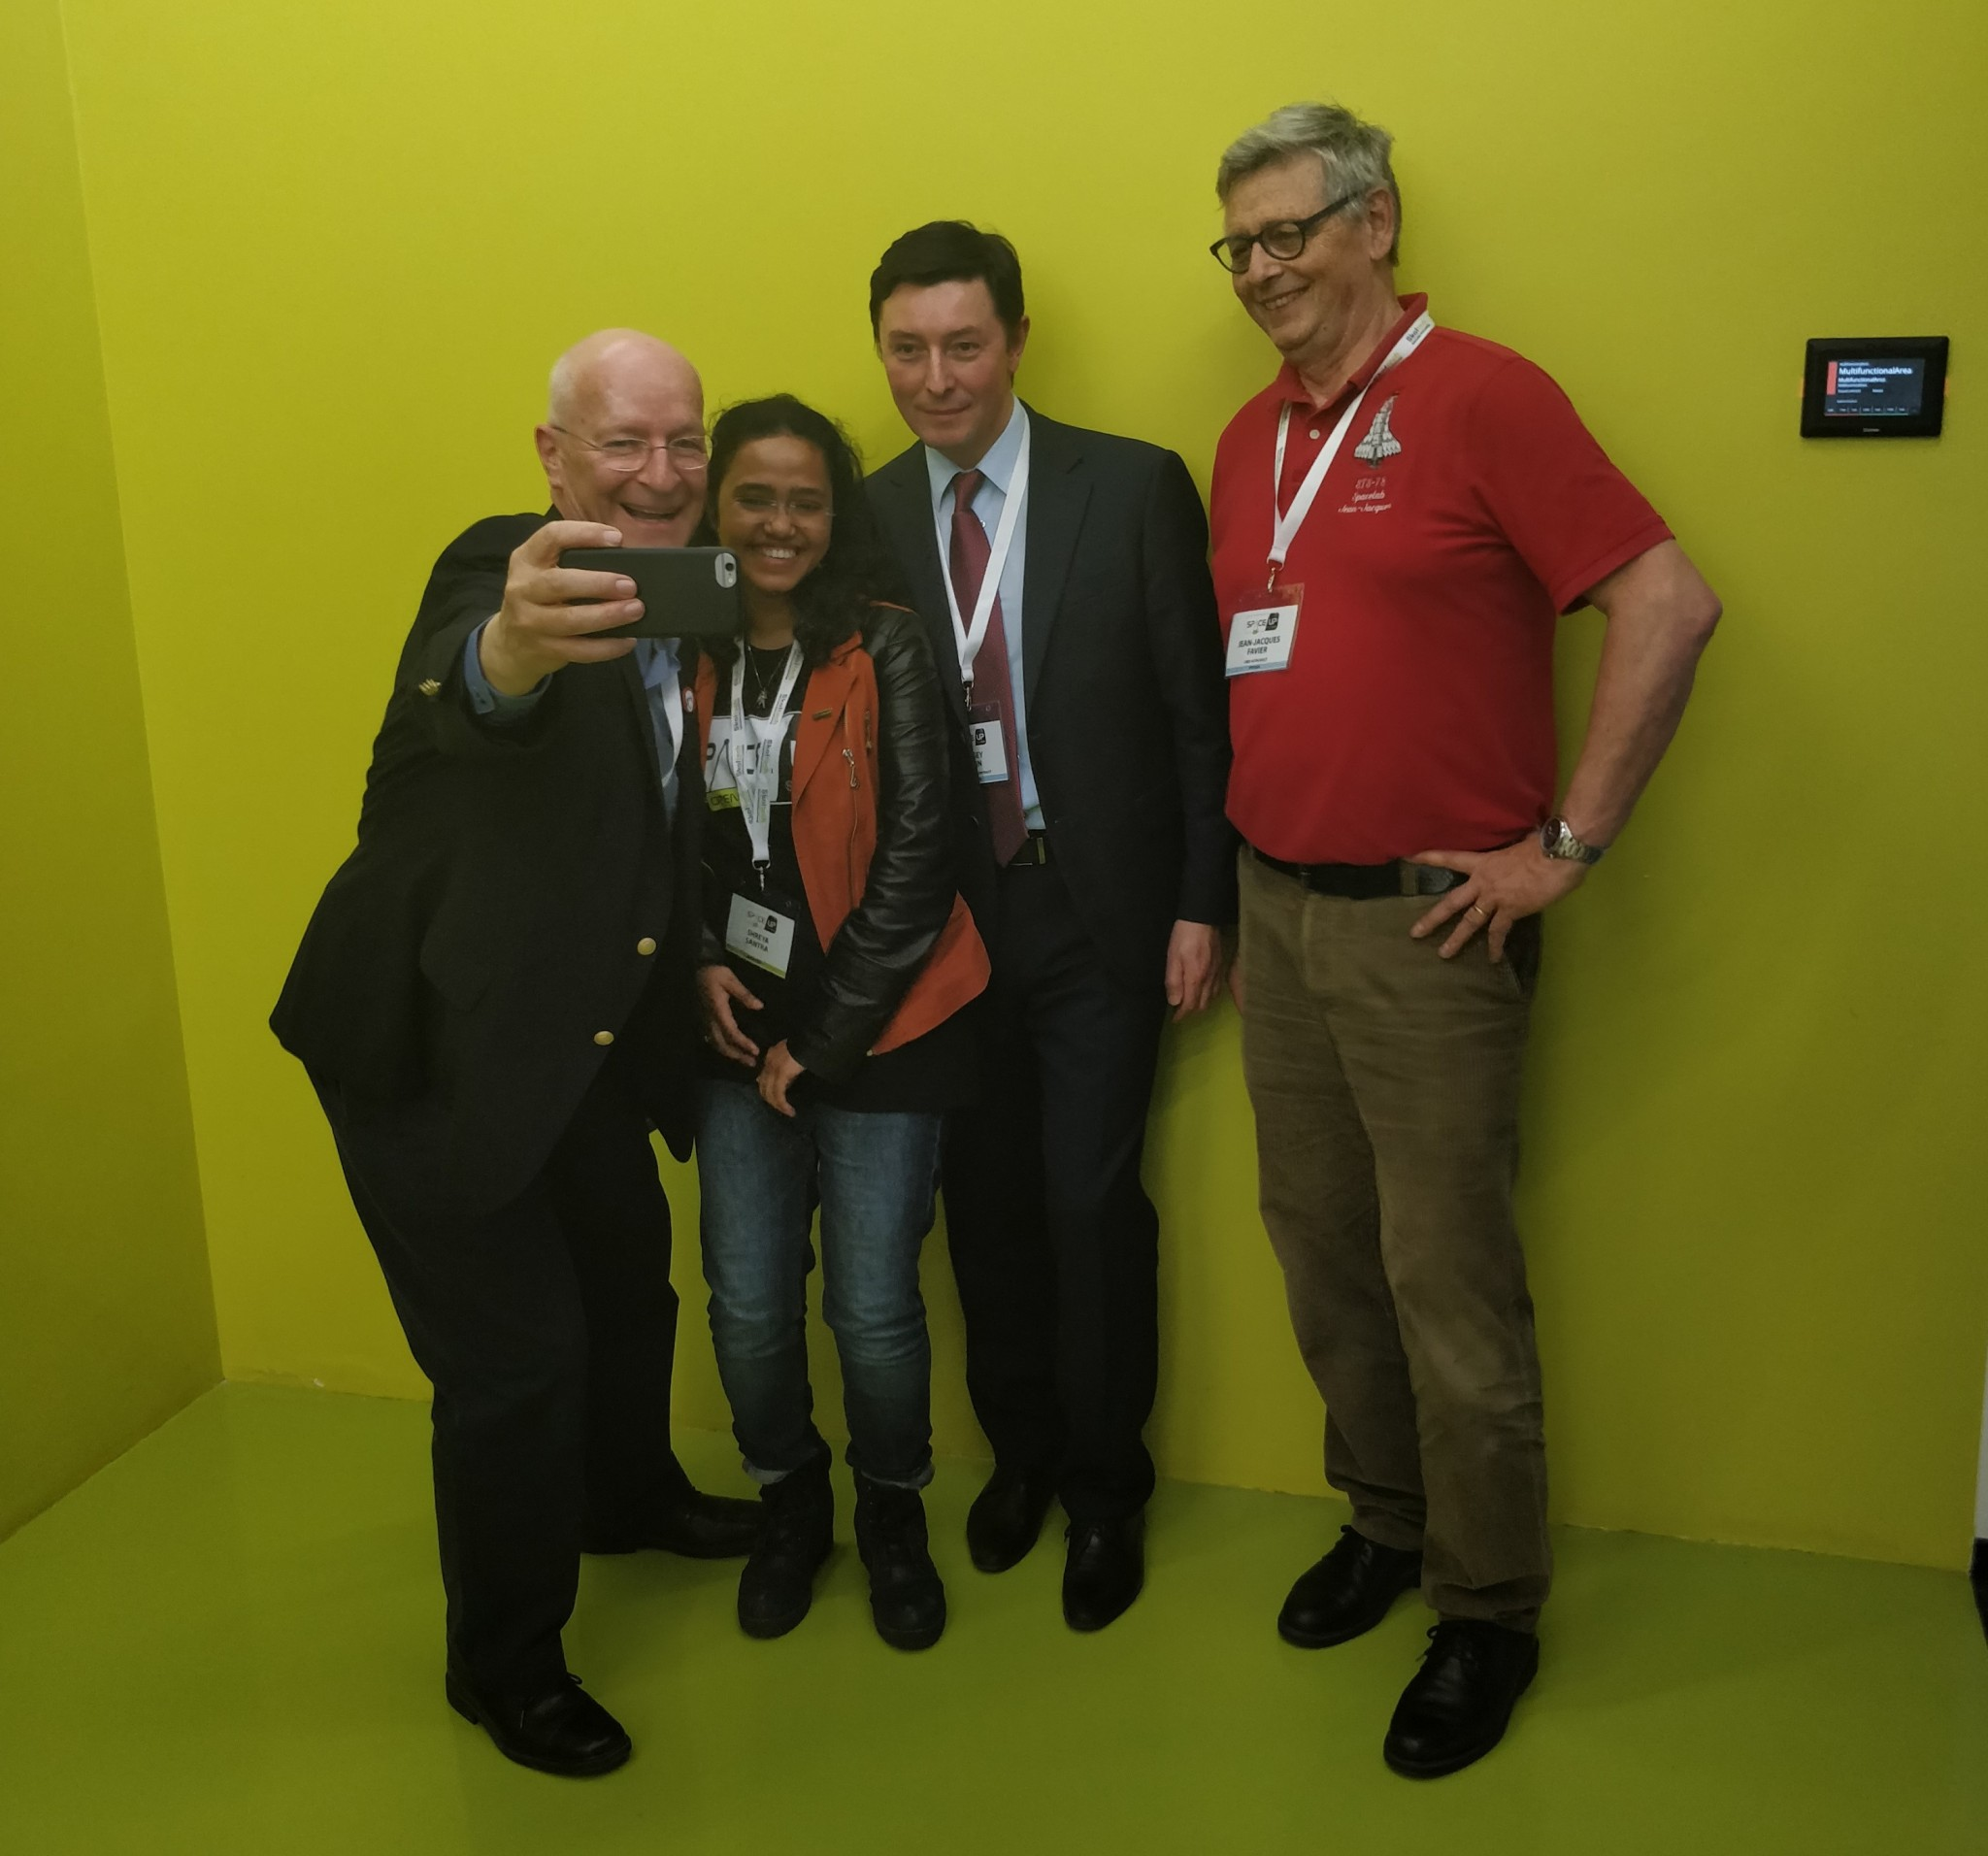 Nicollier snaps a selfie with Skoltech MSc student and SpaceUp organizer Shreya Santra, as well as cosmonaut Sergey Revin and fellow astronaut Jean-Jacques Favier. Photo: Skoltech.